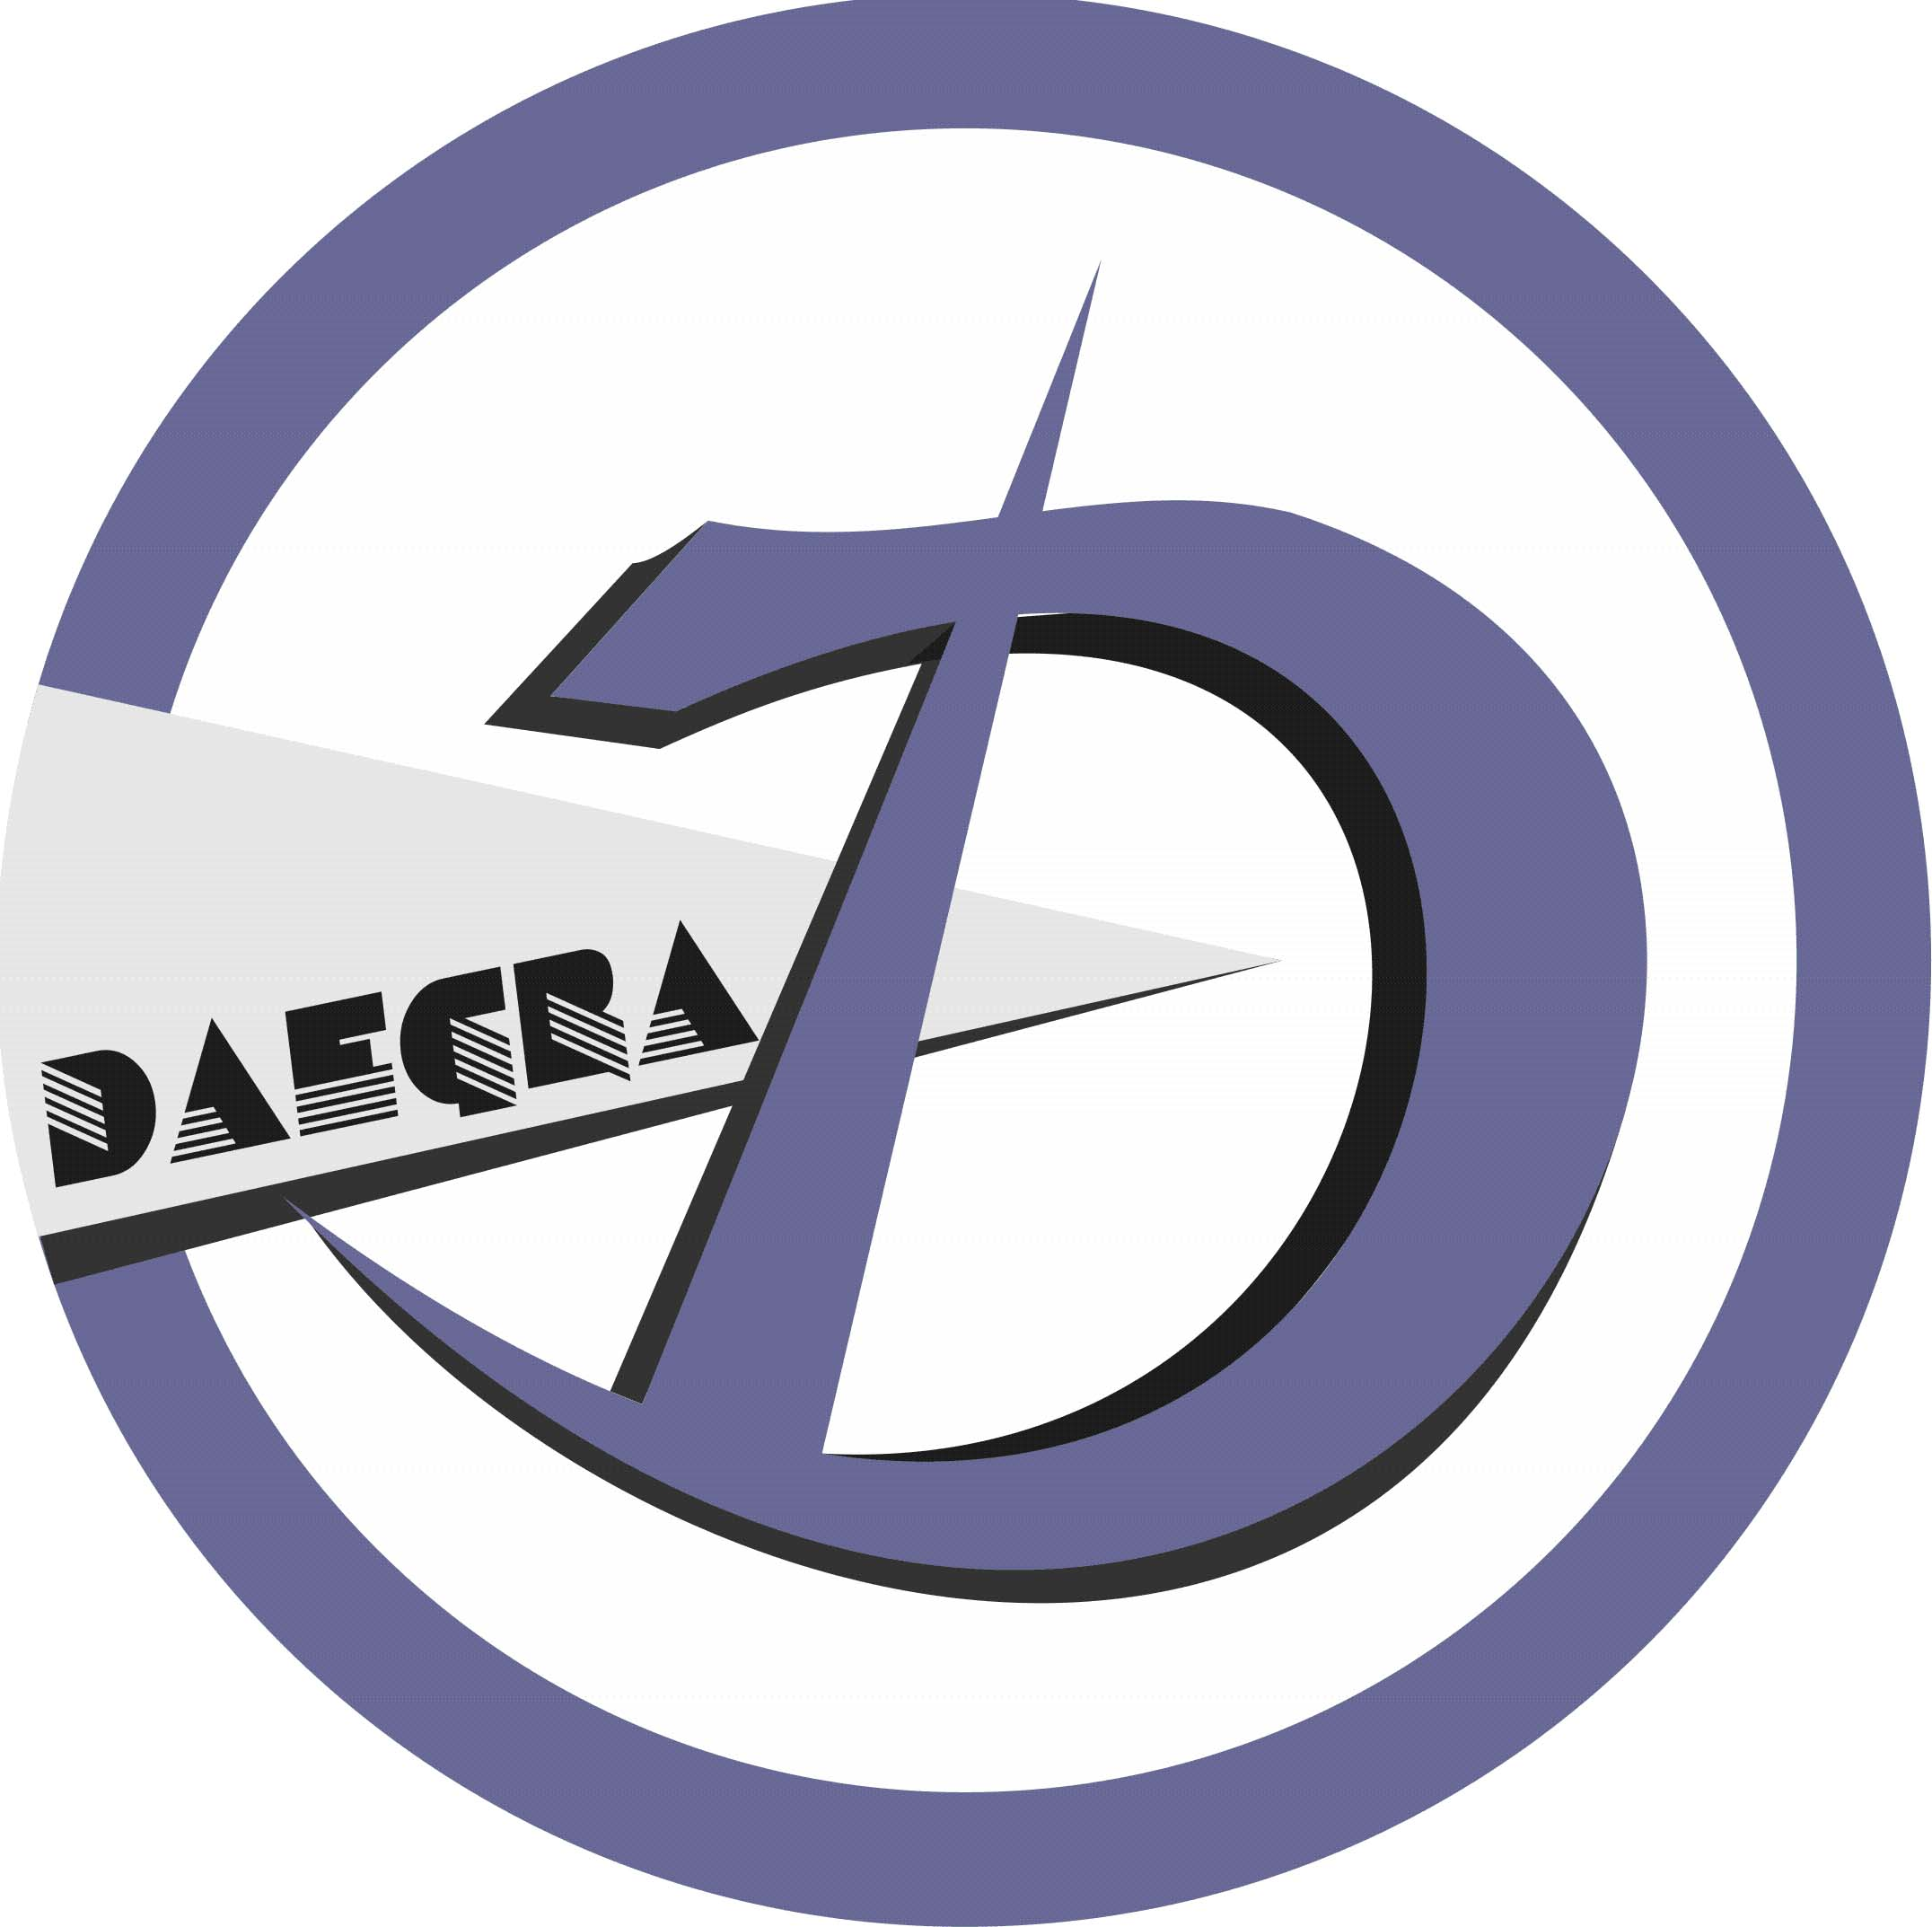 daegra placement job openings in delhi delhi ncr